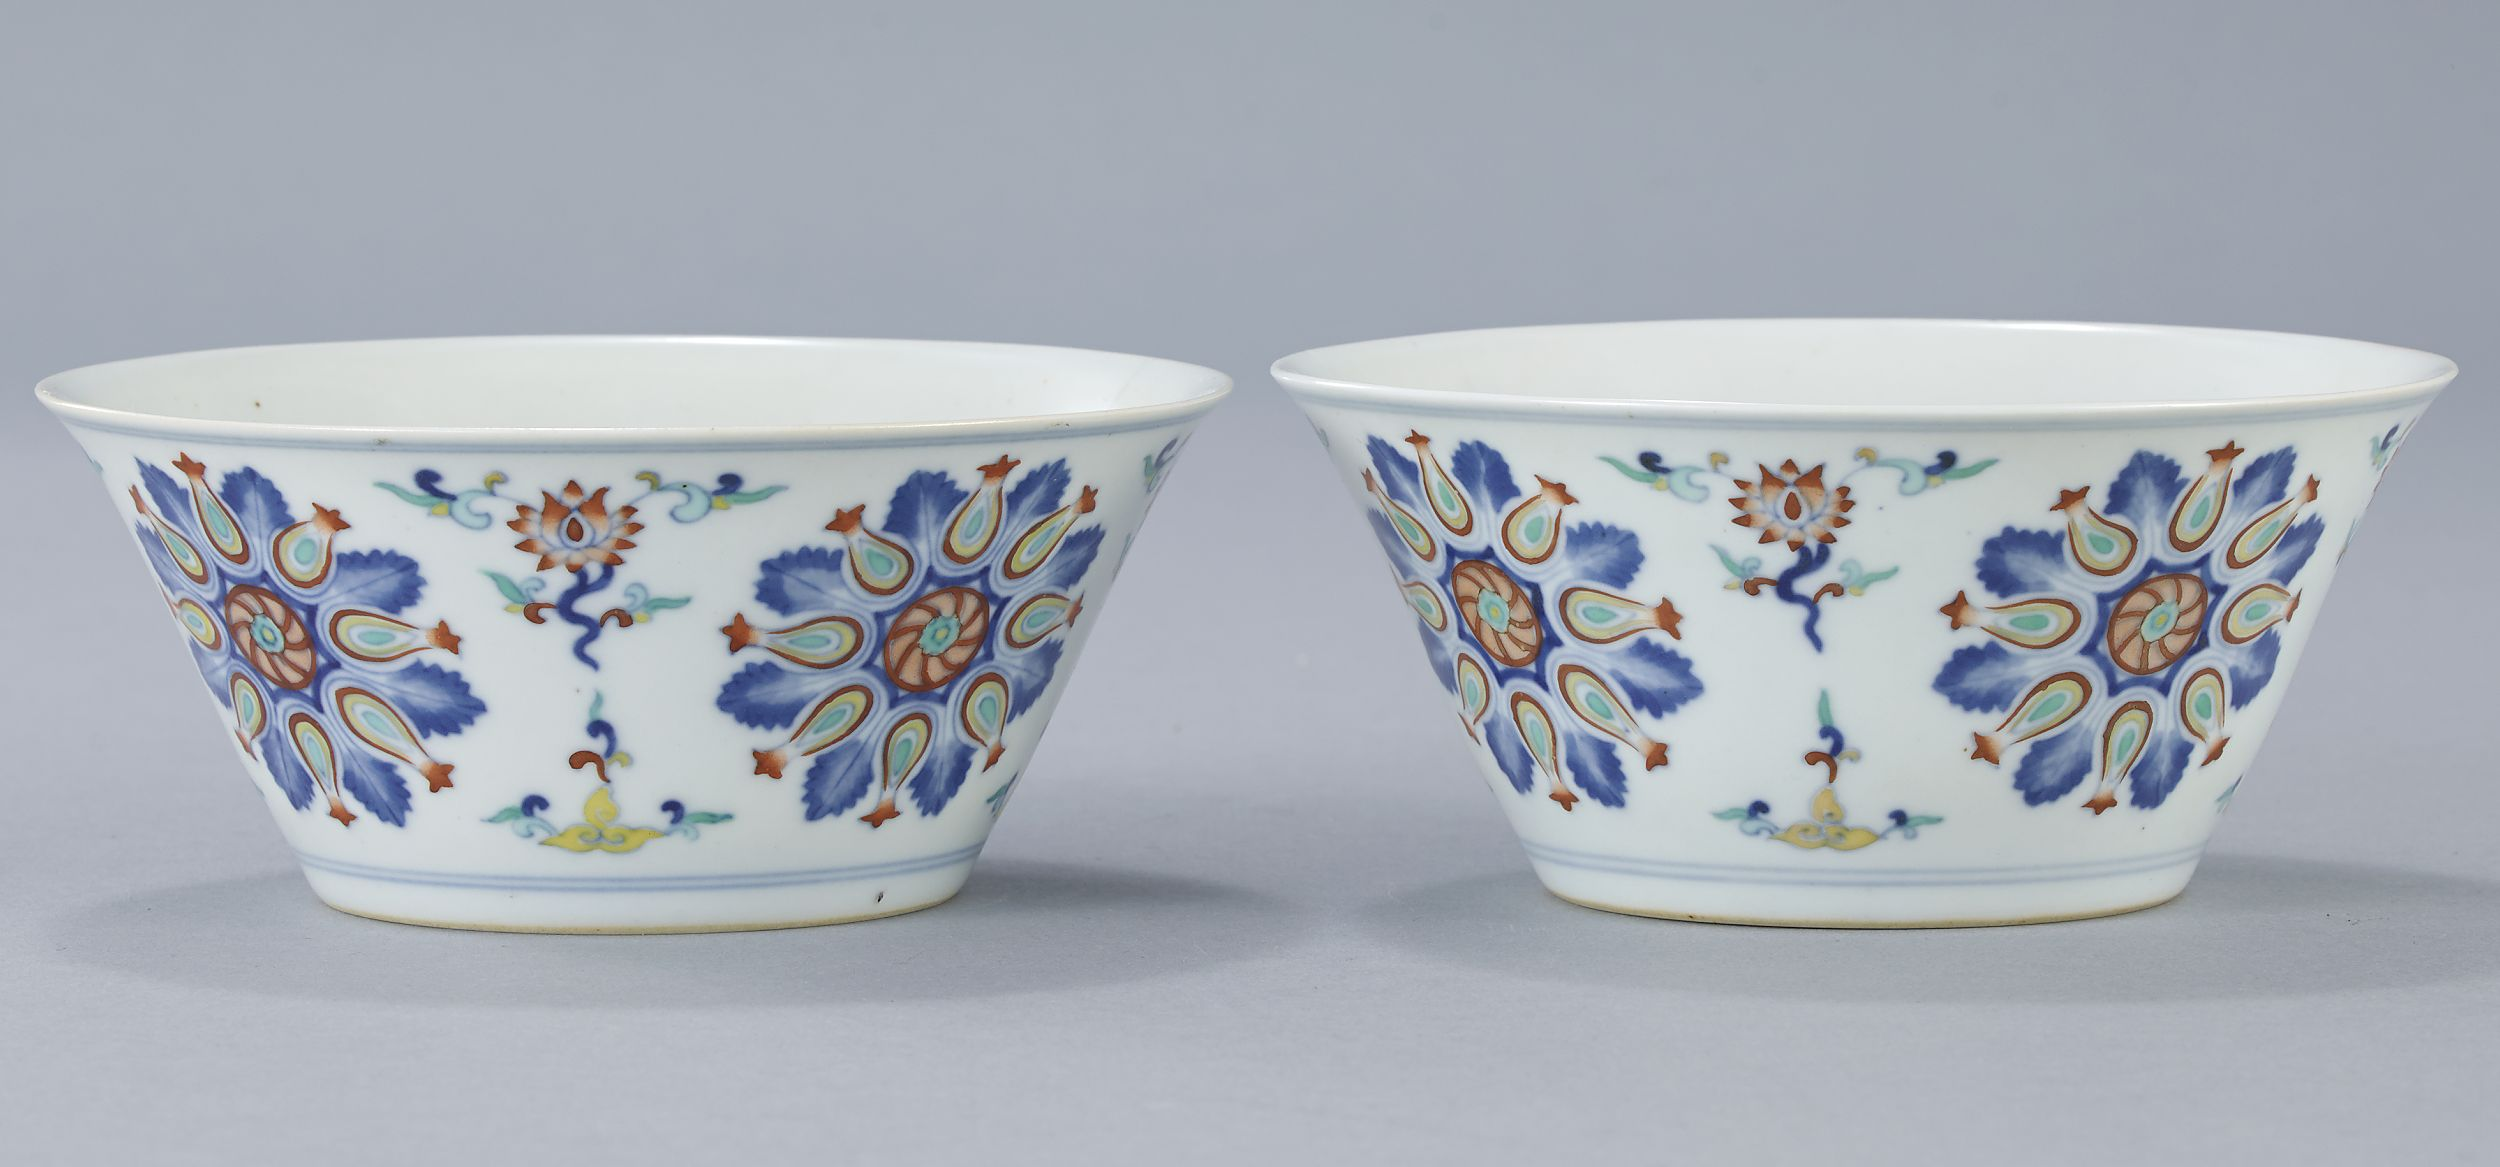 A Pair of Doucai Bowls